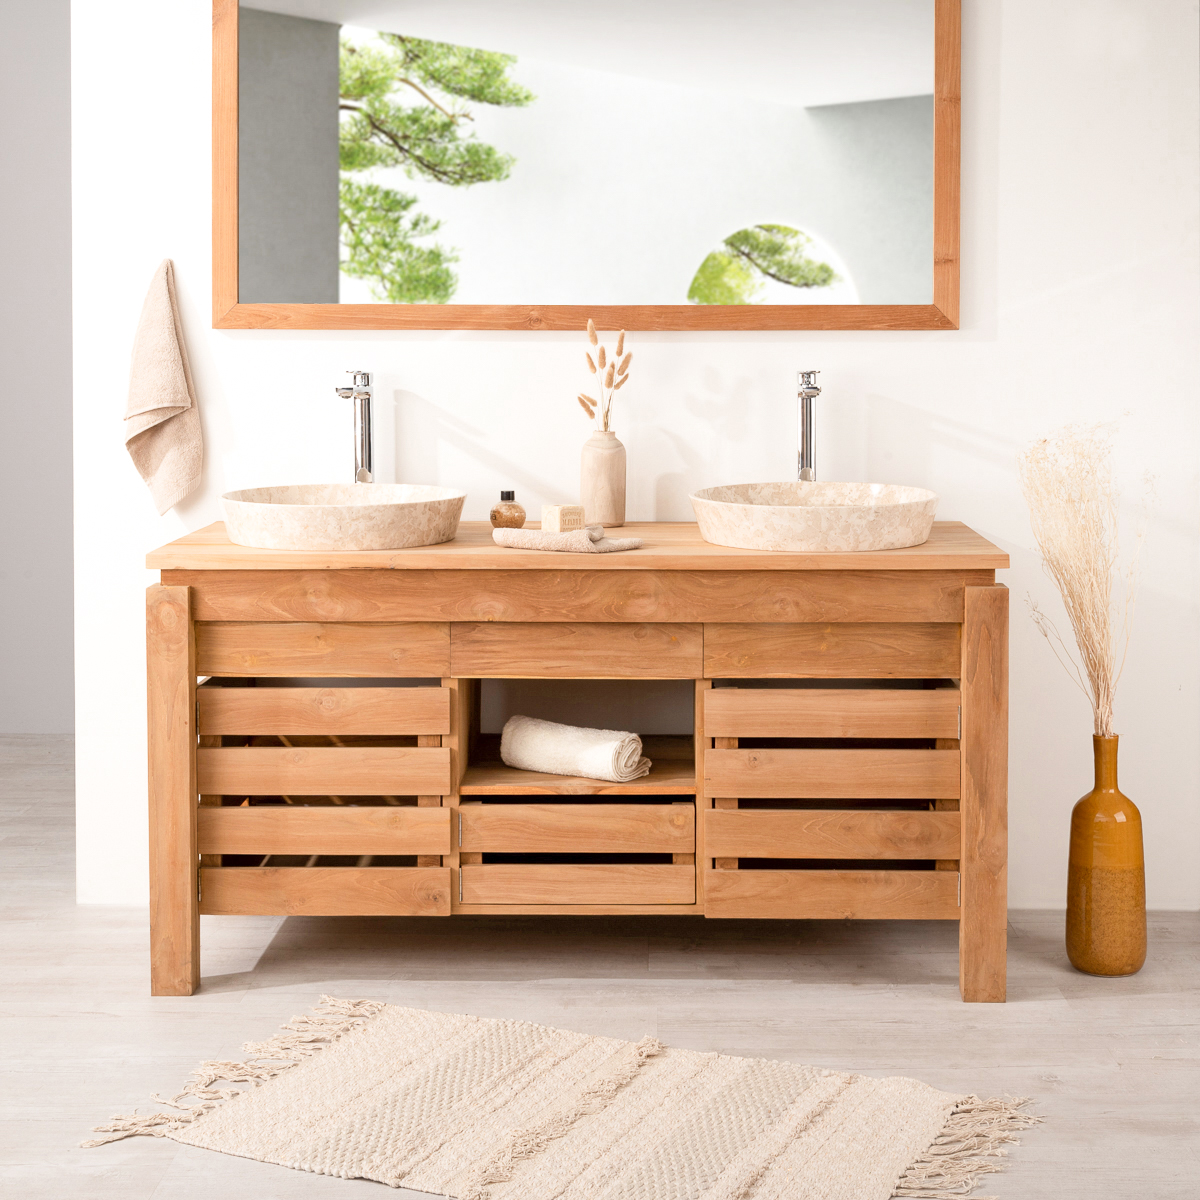 Meuble salle bain simple vasque for Meuble vasque simple